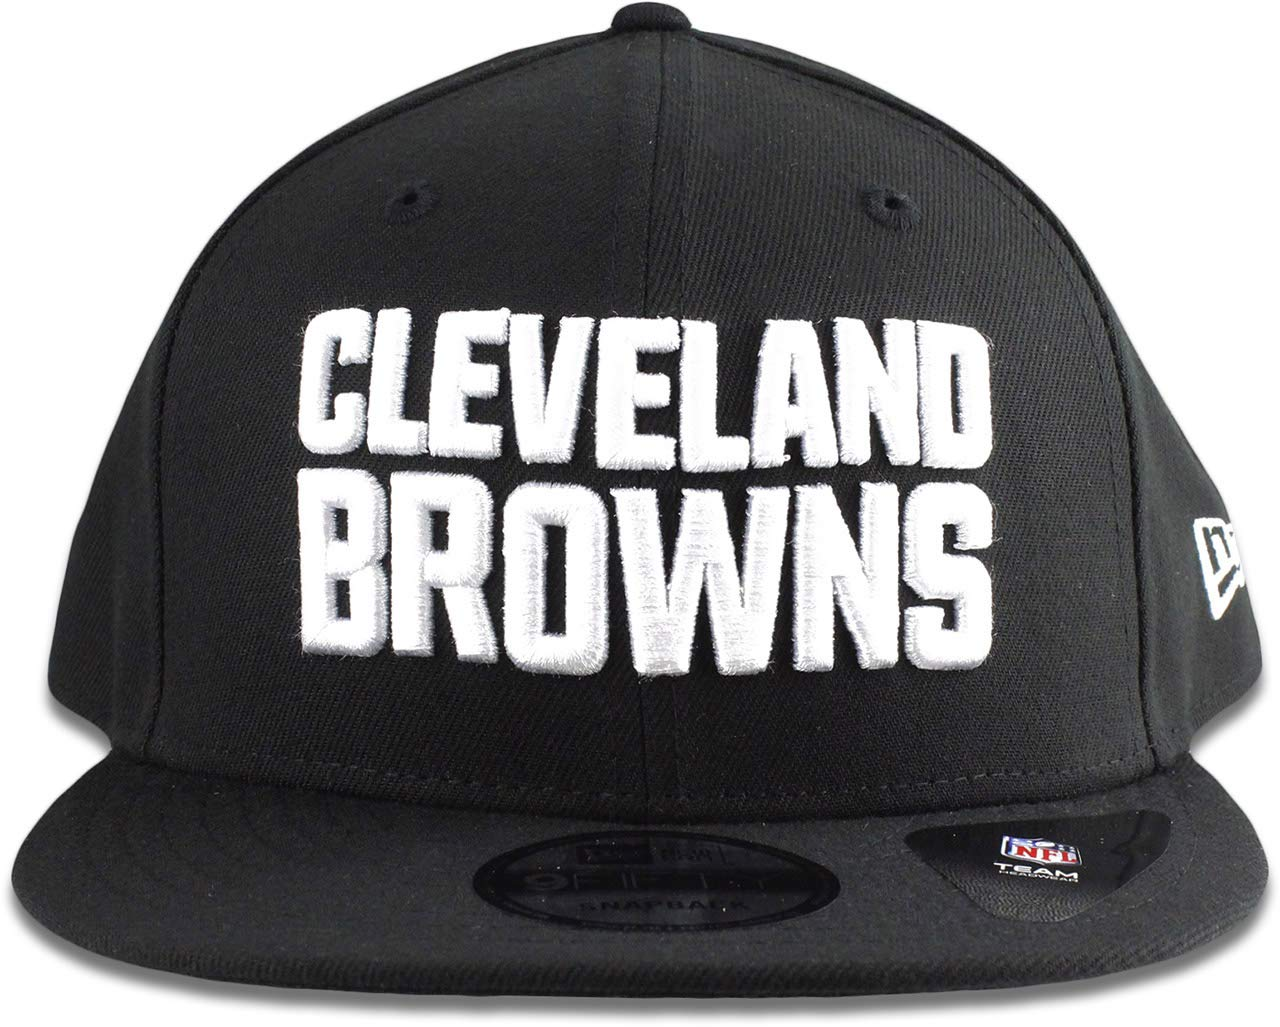 82473c1db6e Amazon.com   New Era Cleveland Browns Hat NFL Black White 9FIFTY Snapback  Adjustable Cap Adult One Size   Sports   Outdoors